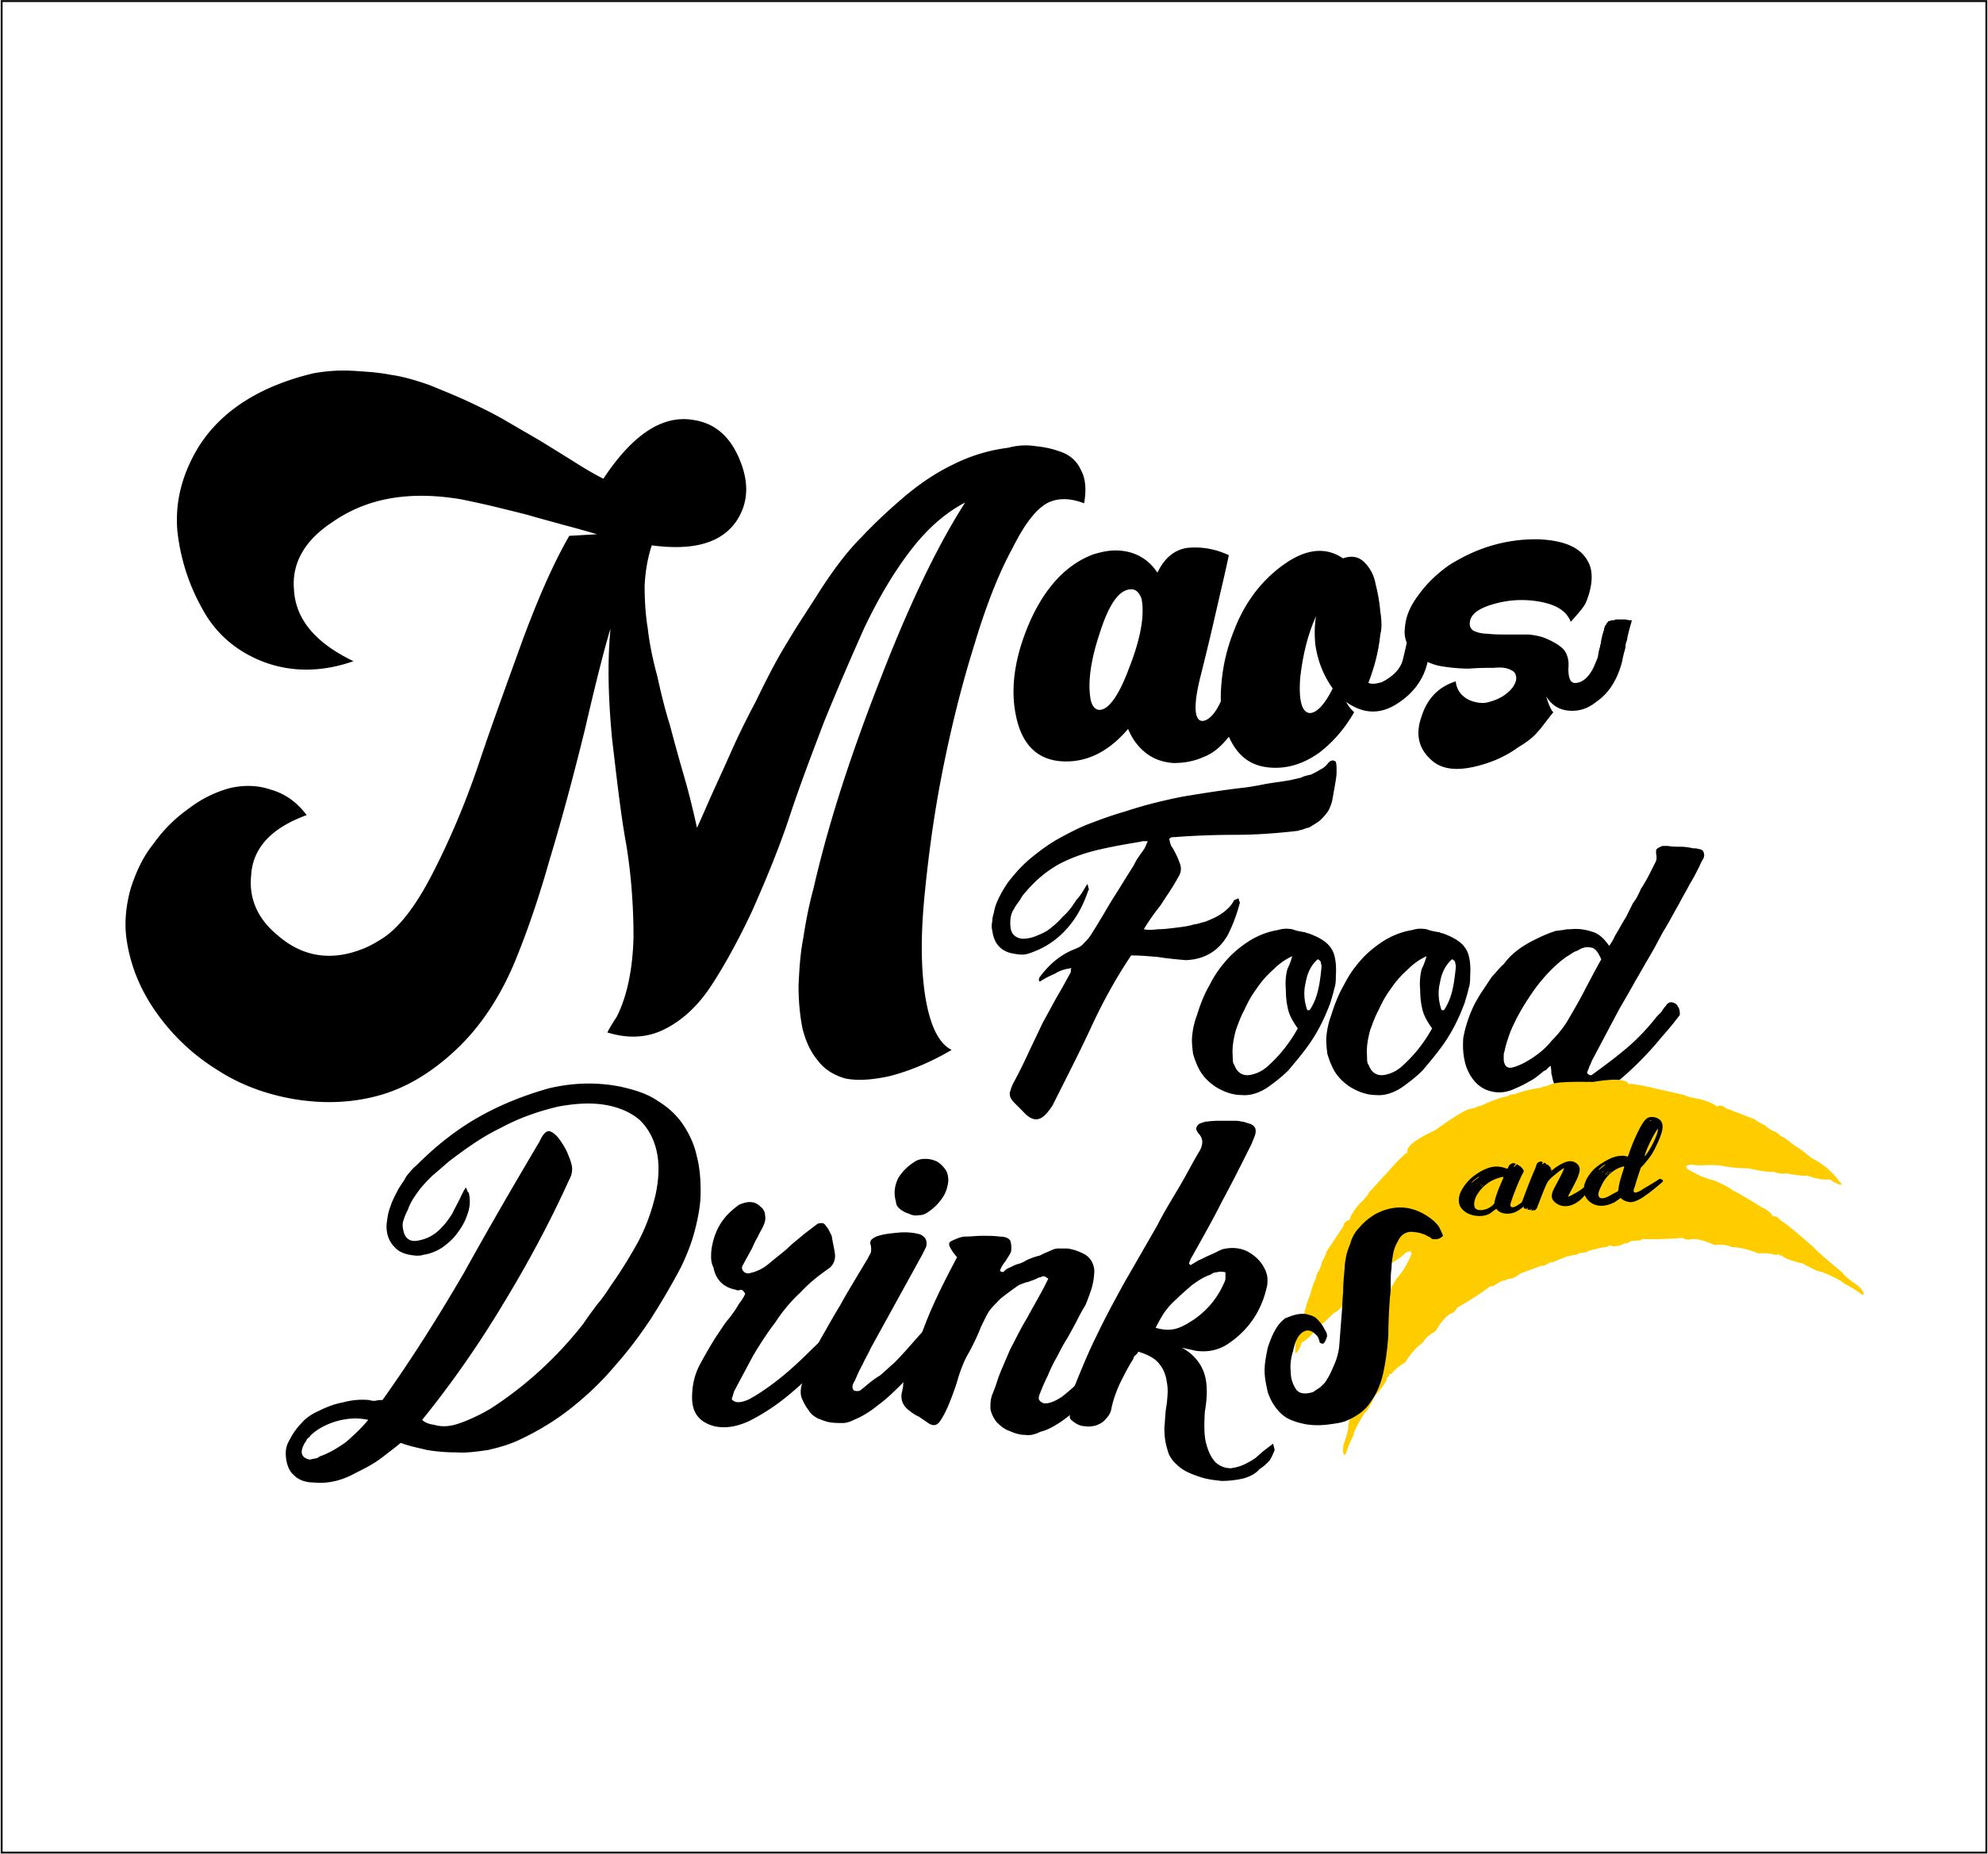 Maos Food and Drinks